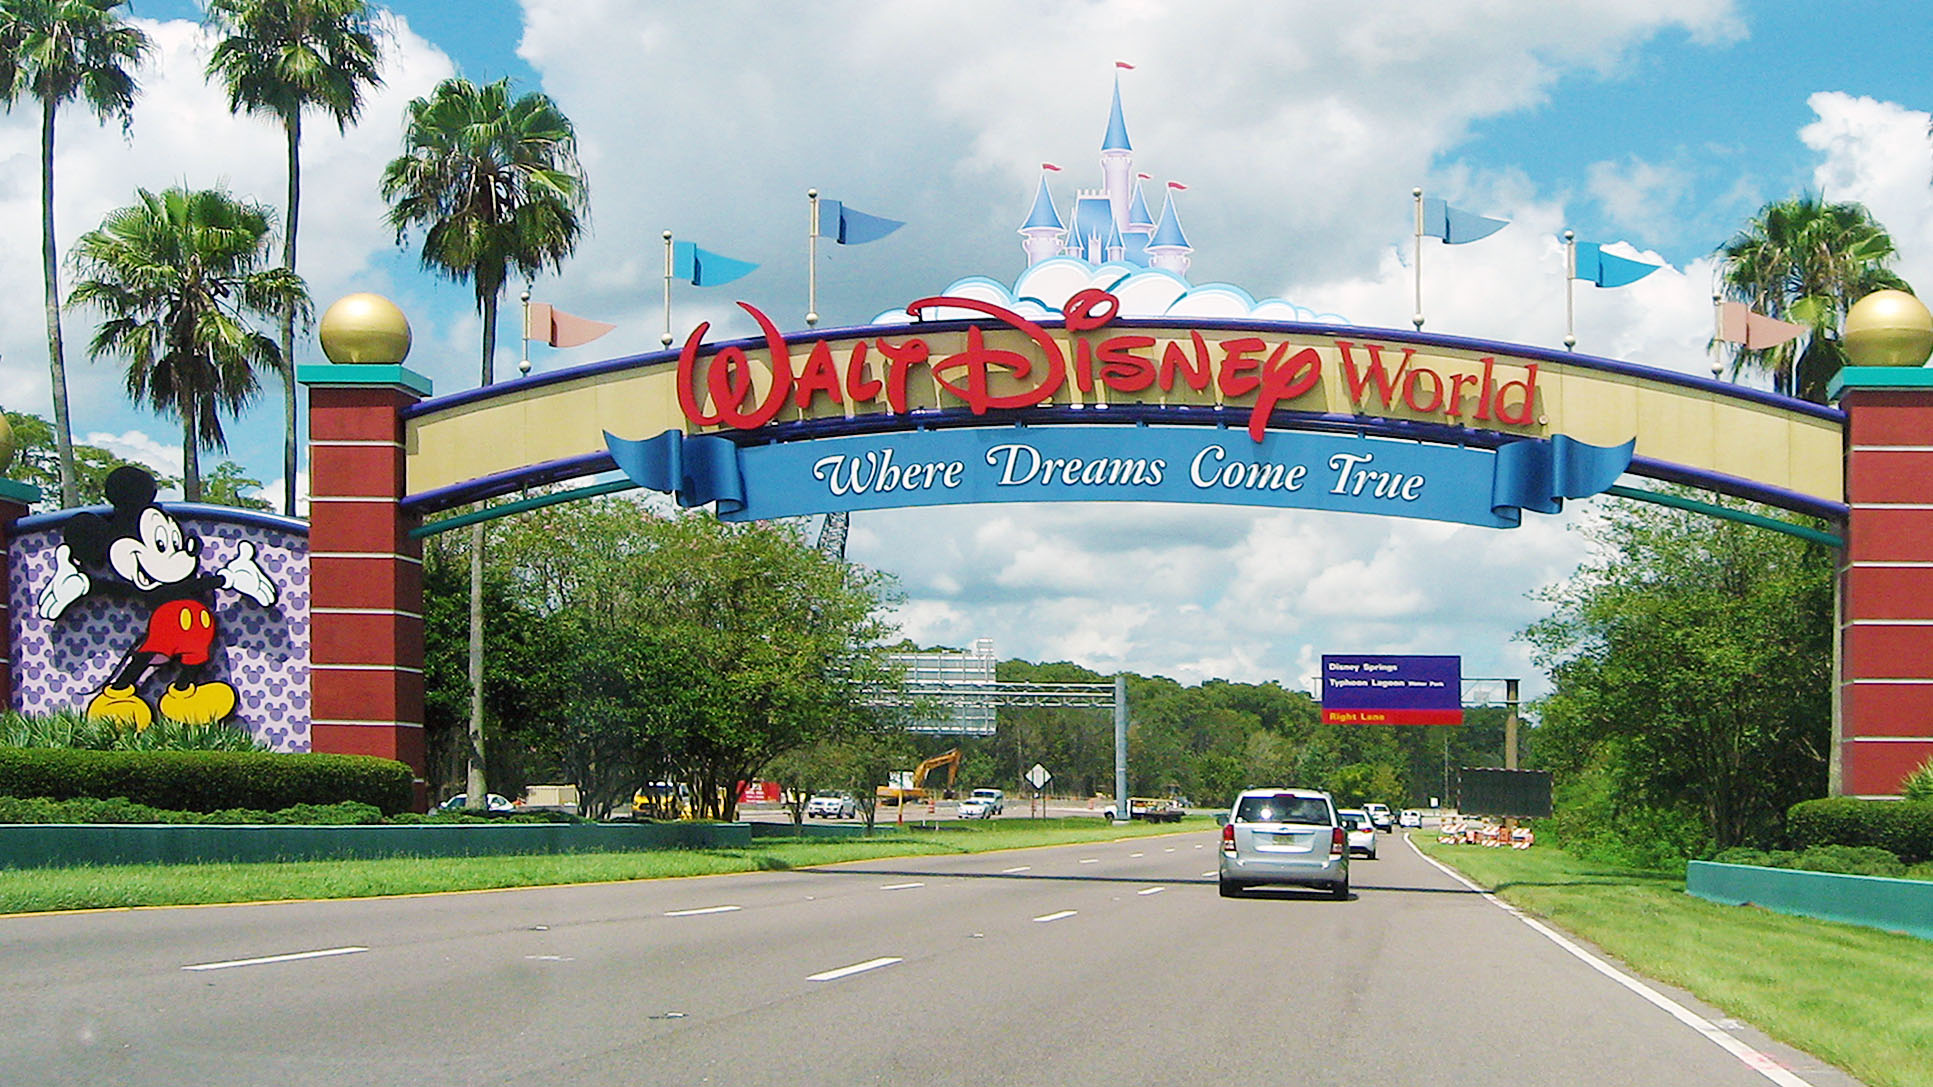 Kaltbaum Capital Management President Gary Kaltbaum and 'Barron's Roundtable' host Jack Otter on the future of Disney following the company's recent earnings report.